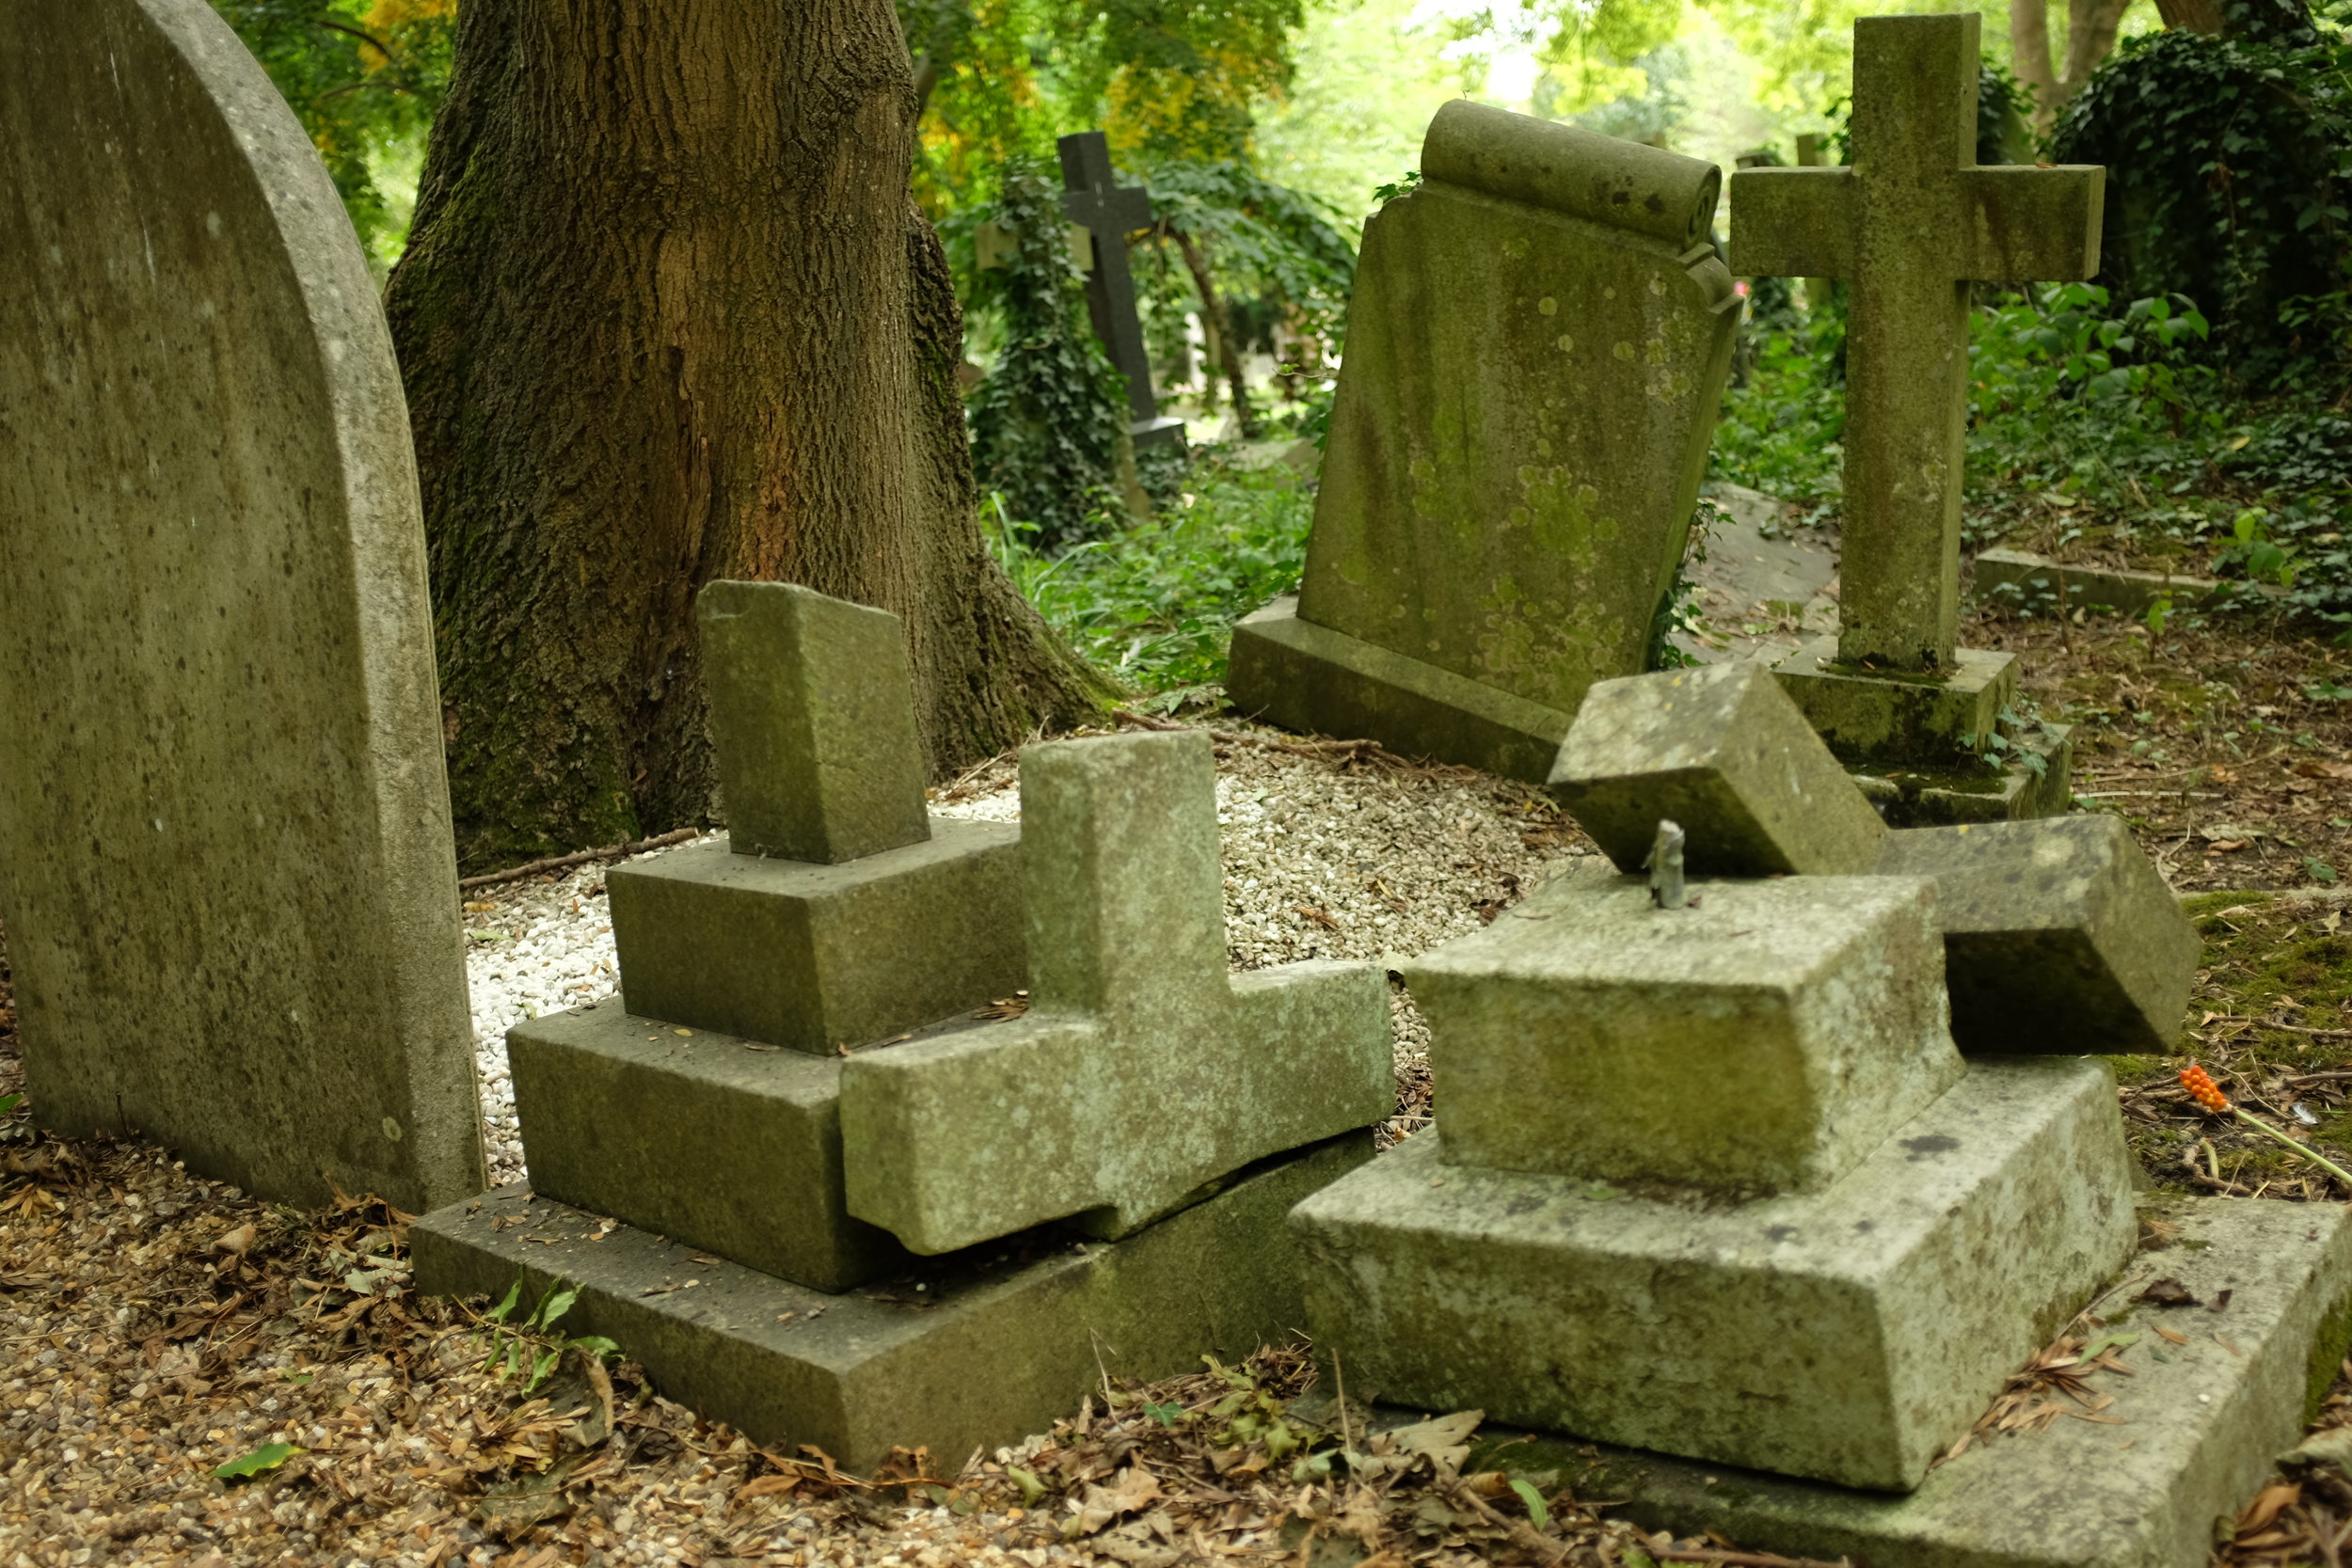 PERMANENCE QUESTIONED   There is a sense that stone is forever. But a string of deaths from collapsing graves led to strength-testing on tombstones across England in the 2000s. Countless monuments gave out under pressure, giving many English cemeteries a look of disrepair. Many of the markers that failed these tests were newer markers  (not pictured) , illustrating a lower grade of craftsmanship and tying cemeteries inextricably to larger industrial trends.